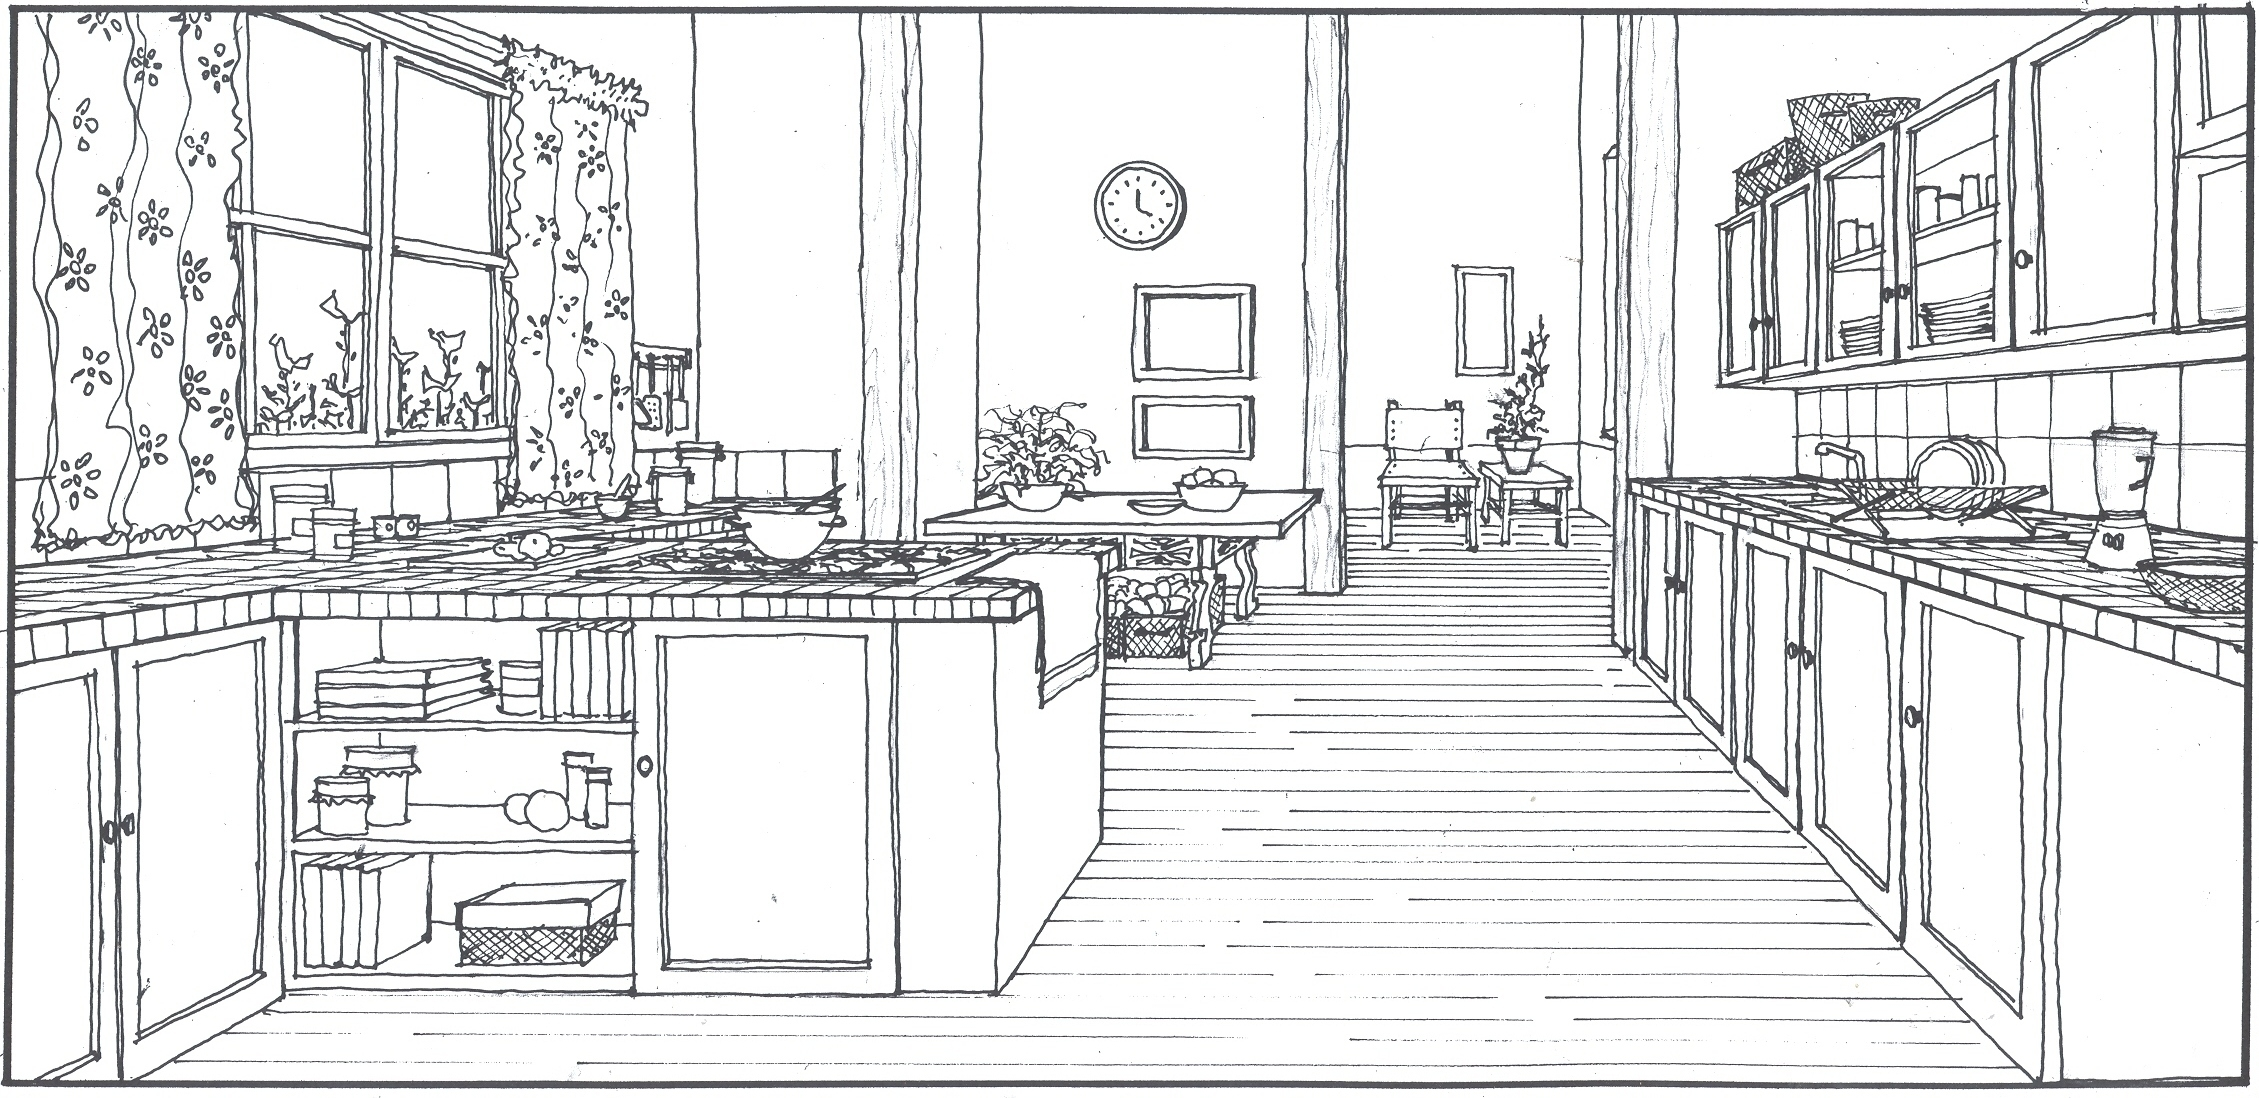 Interior Design Sketches Kitchen unique interior design sketches kitchen drawing glamorous ideas